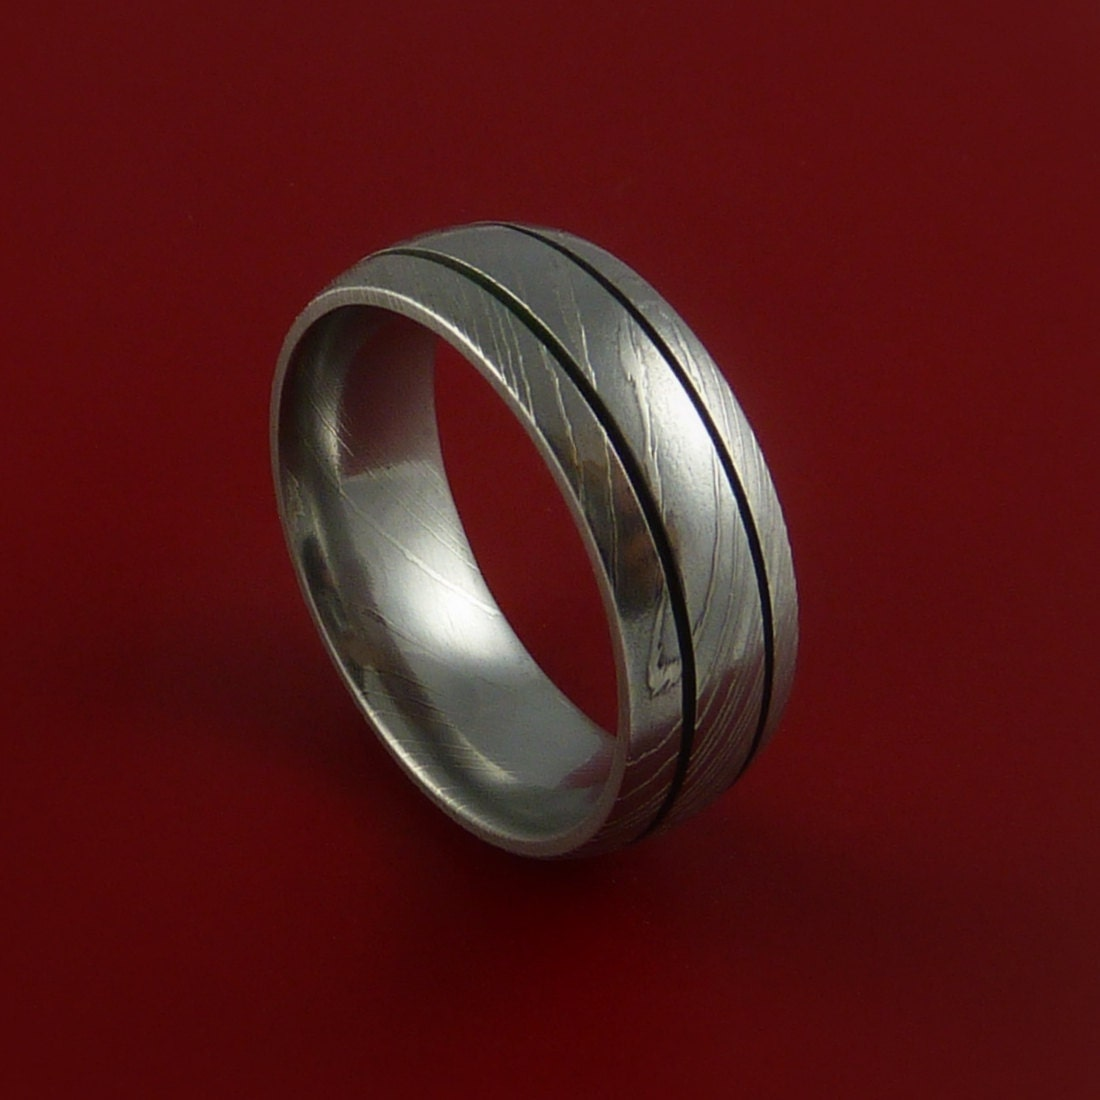 awesome photograph of damascus steel wedding band